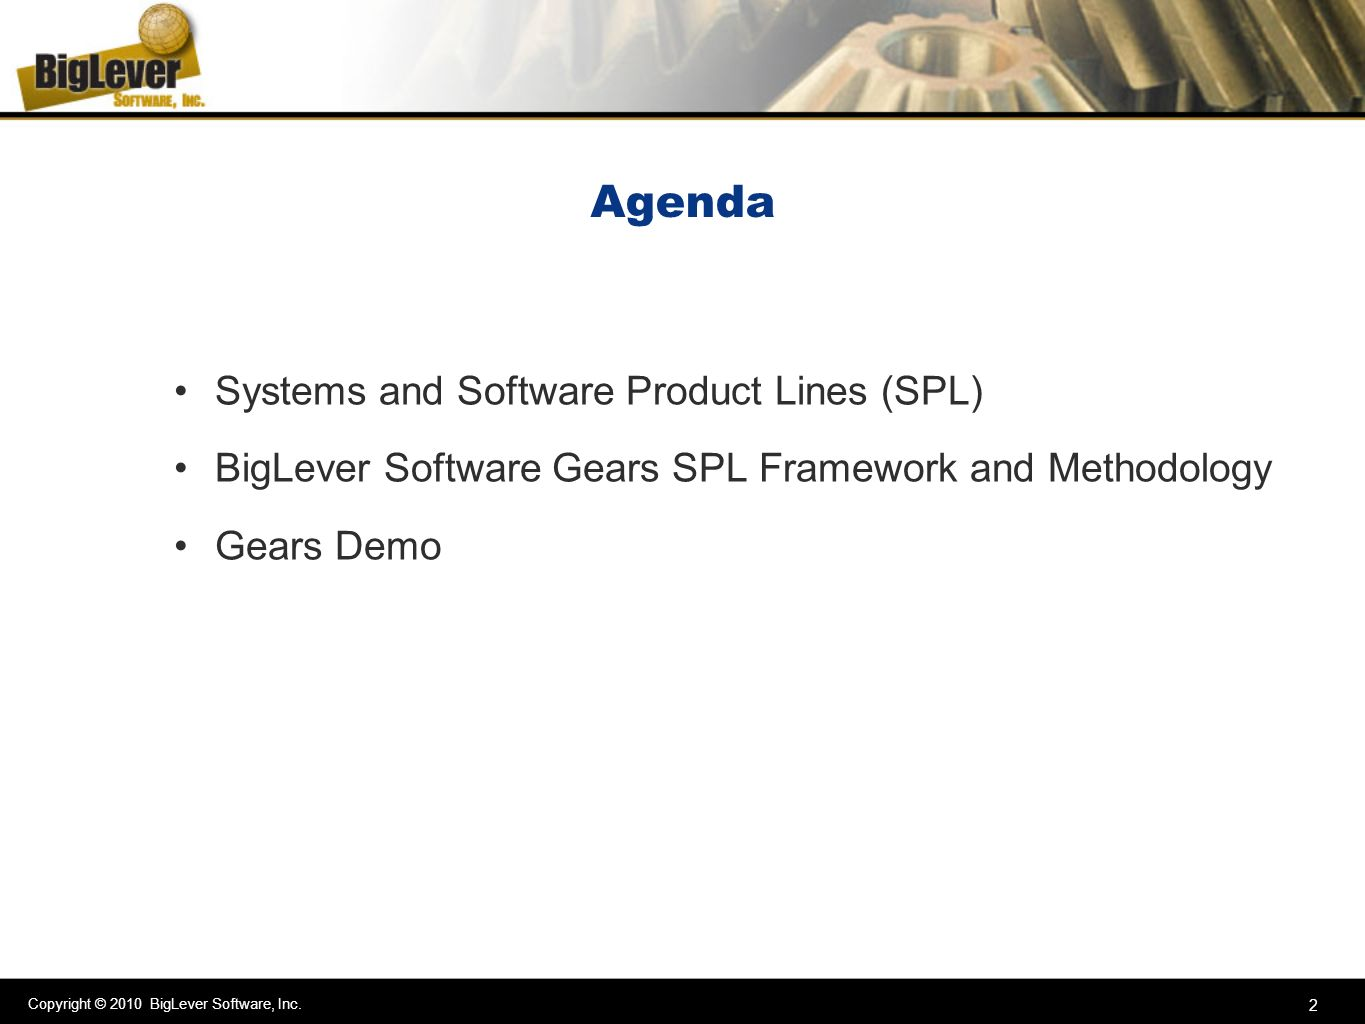 Agenda Systems and Software Product Lines (SPL)